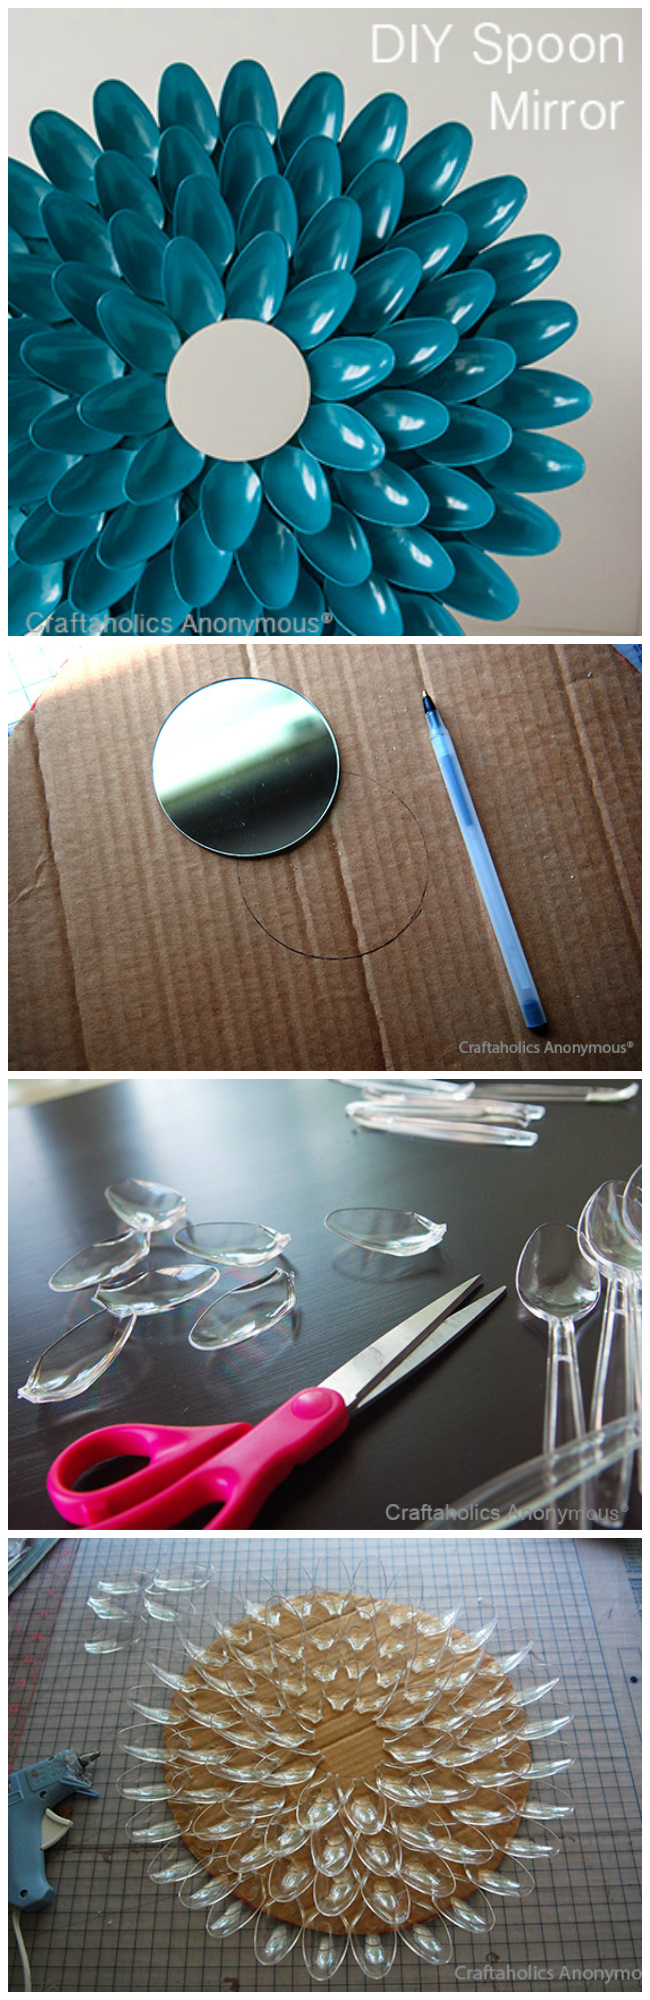 DIY Spoon Starburst Mirror tutorial. Cheap, easy craft that looks stunning on the wall!